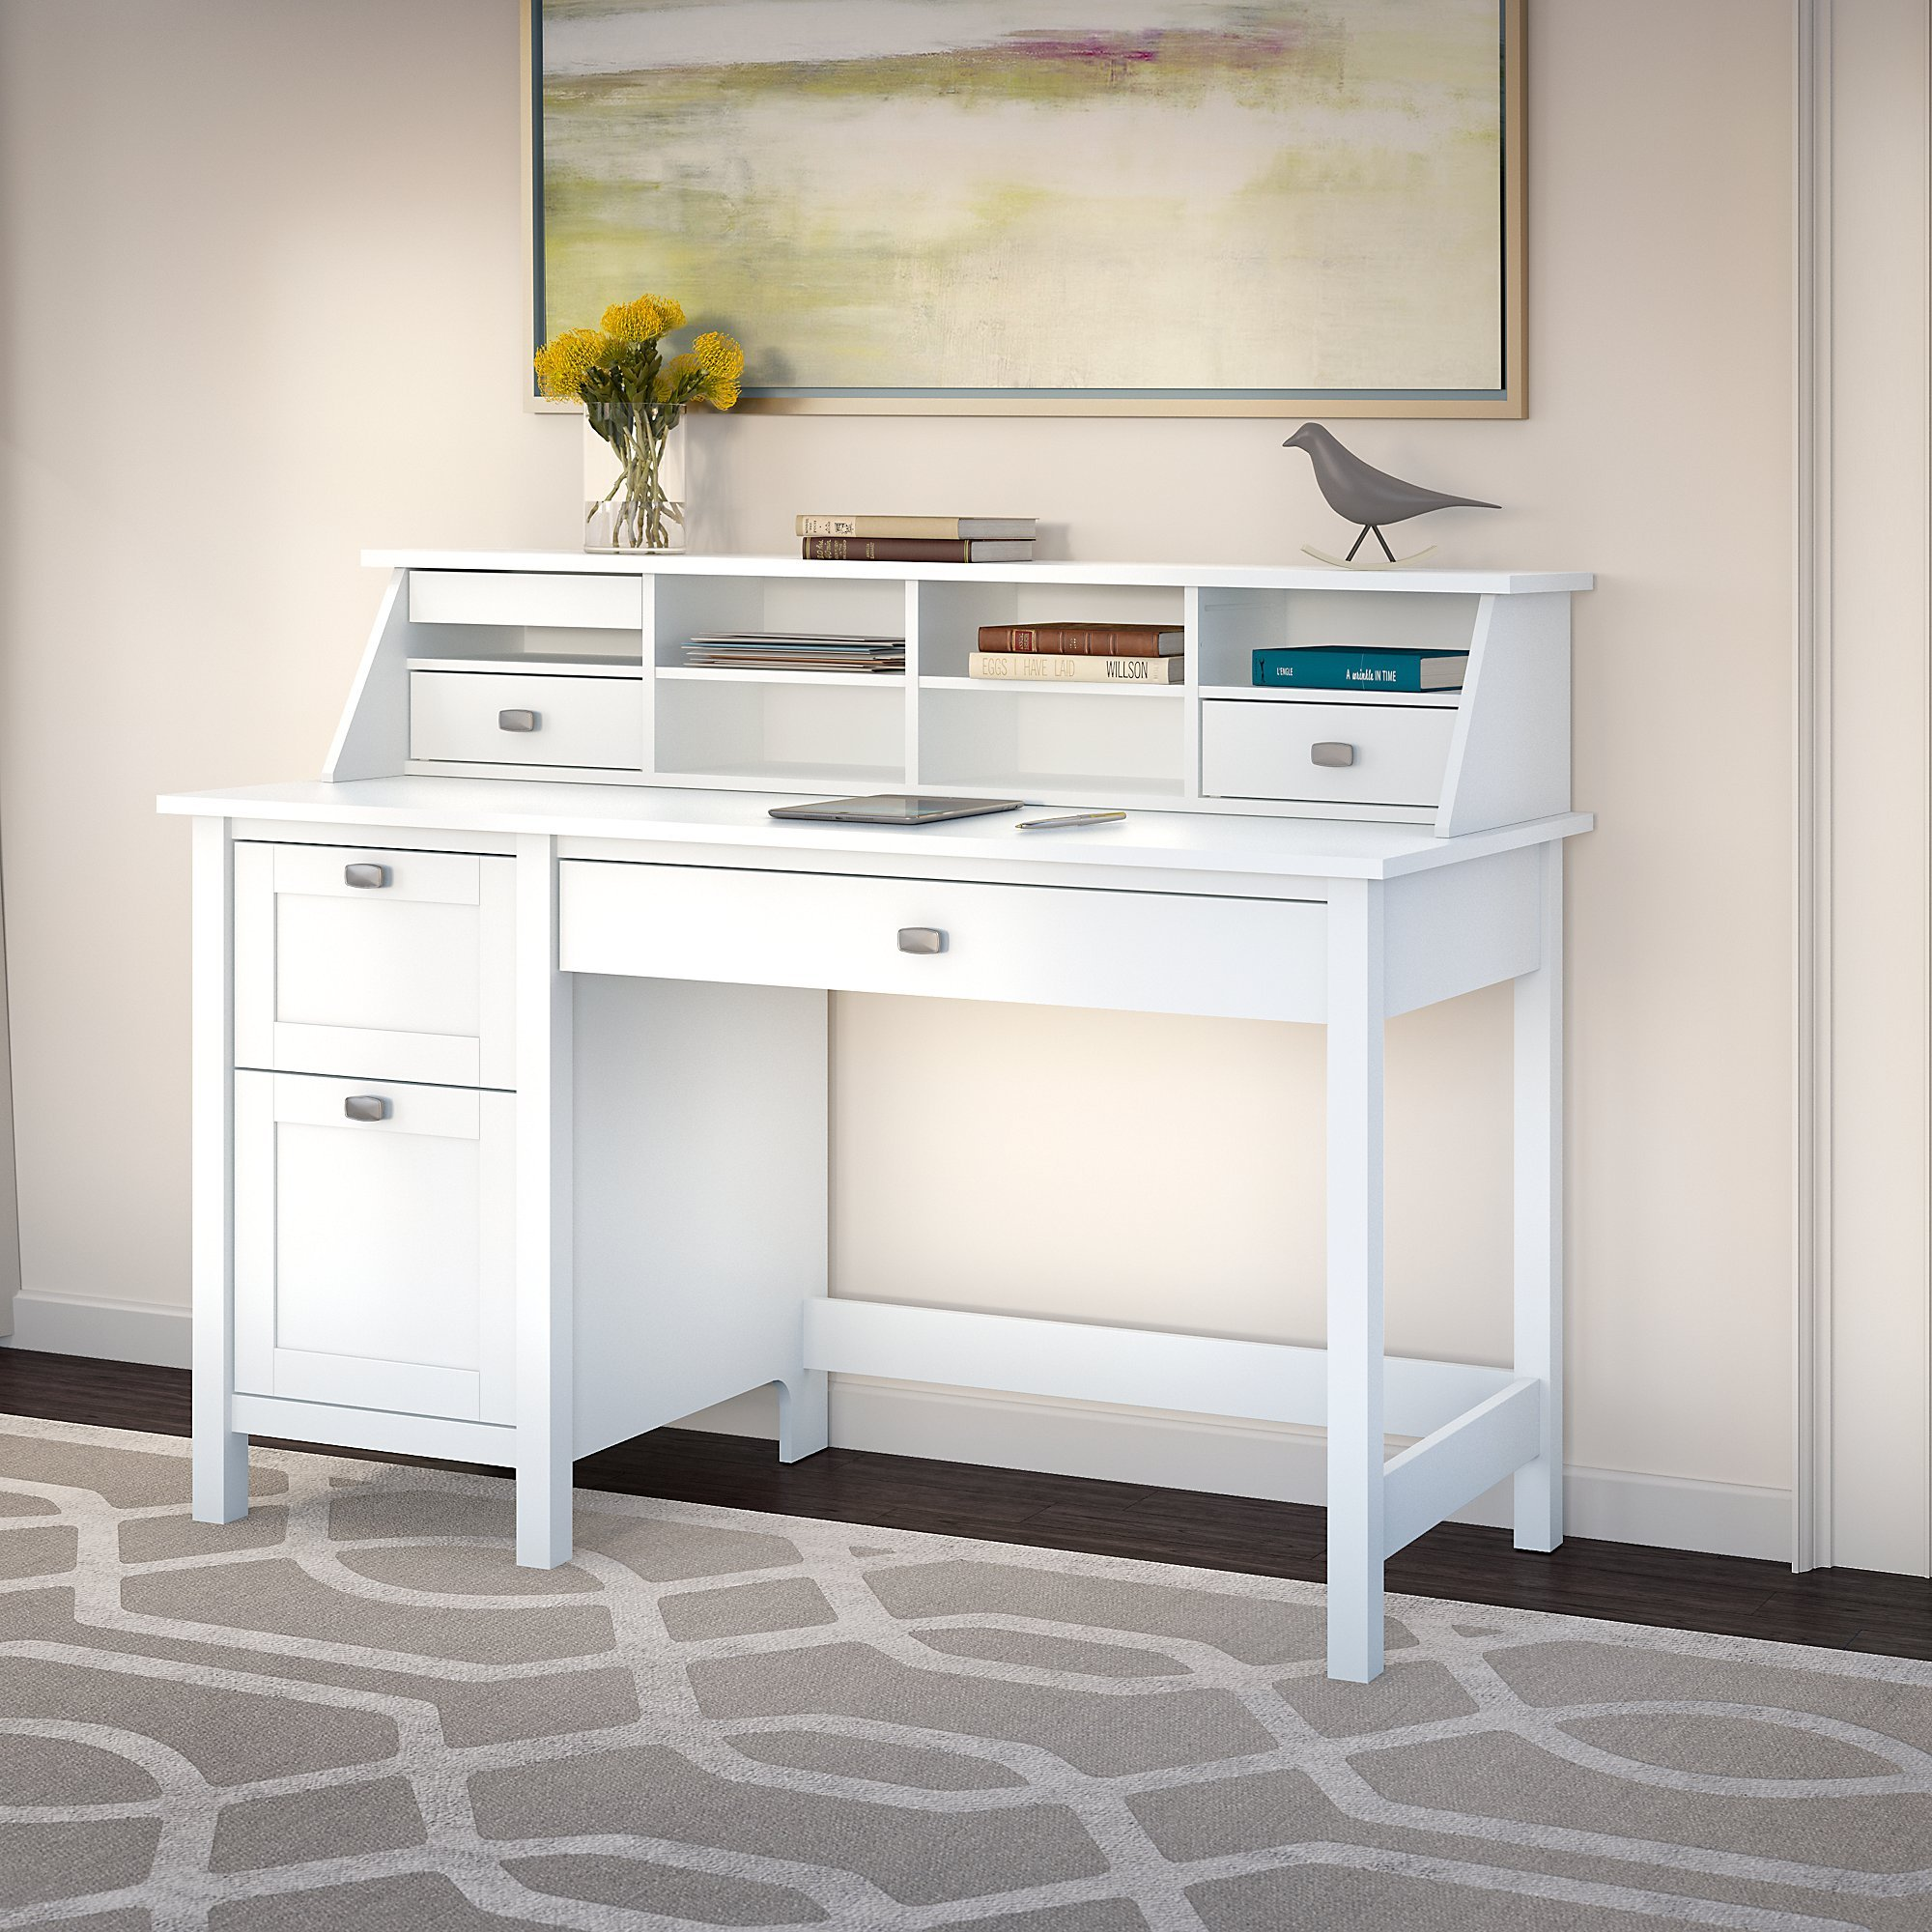 Broadview Pure White Desk with Drawers and Organizer